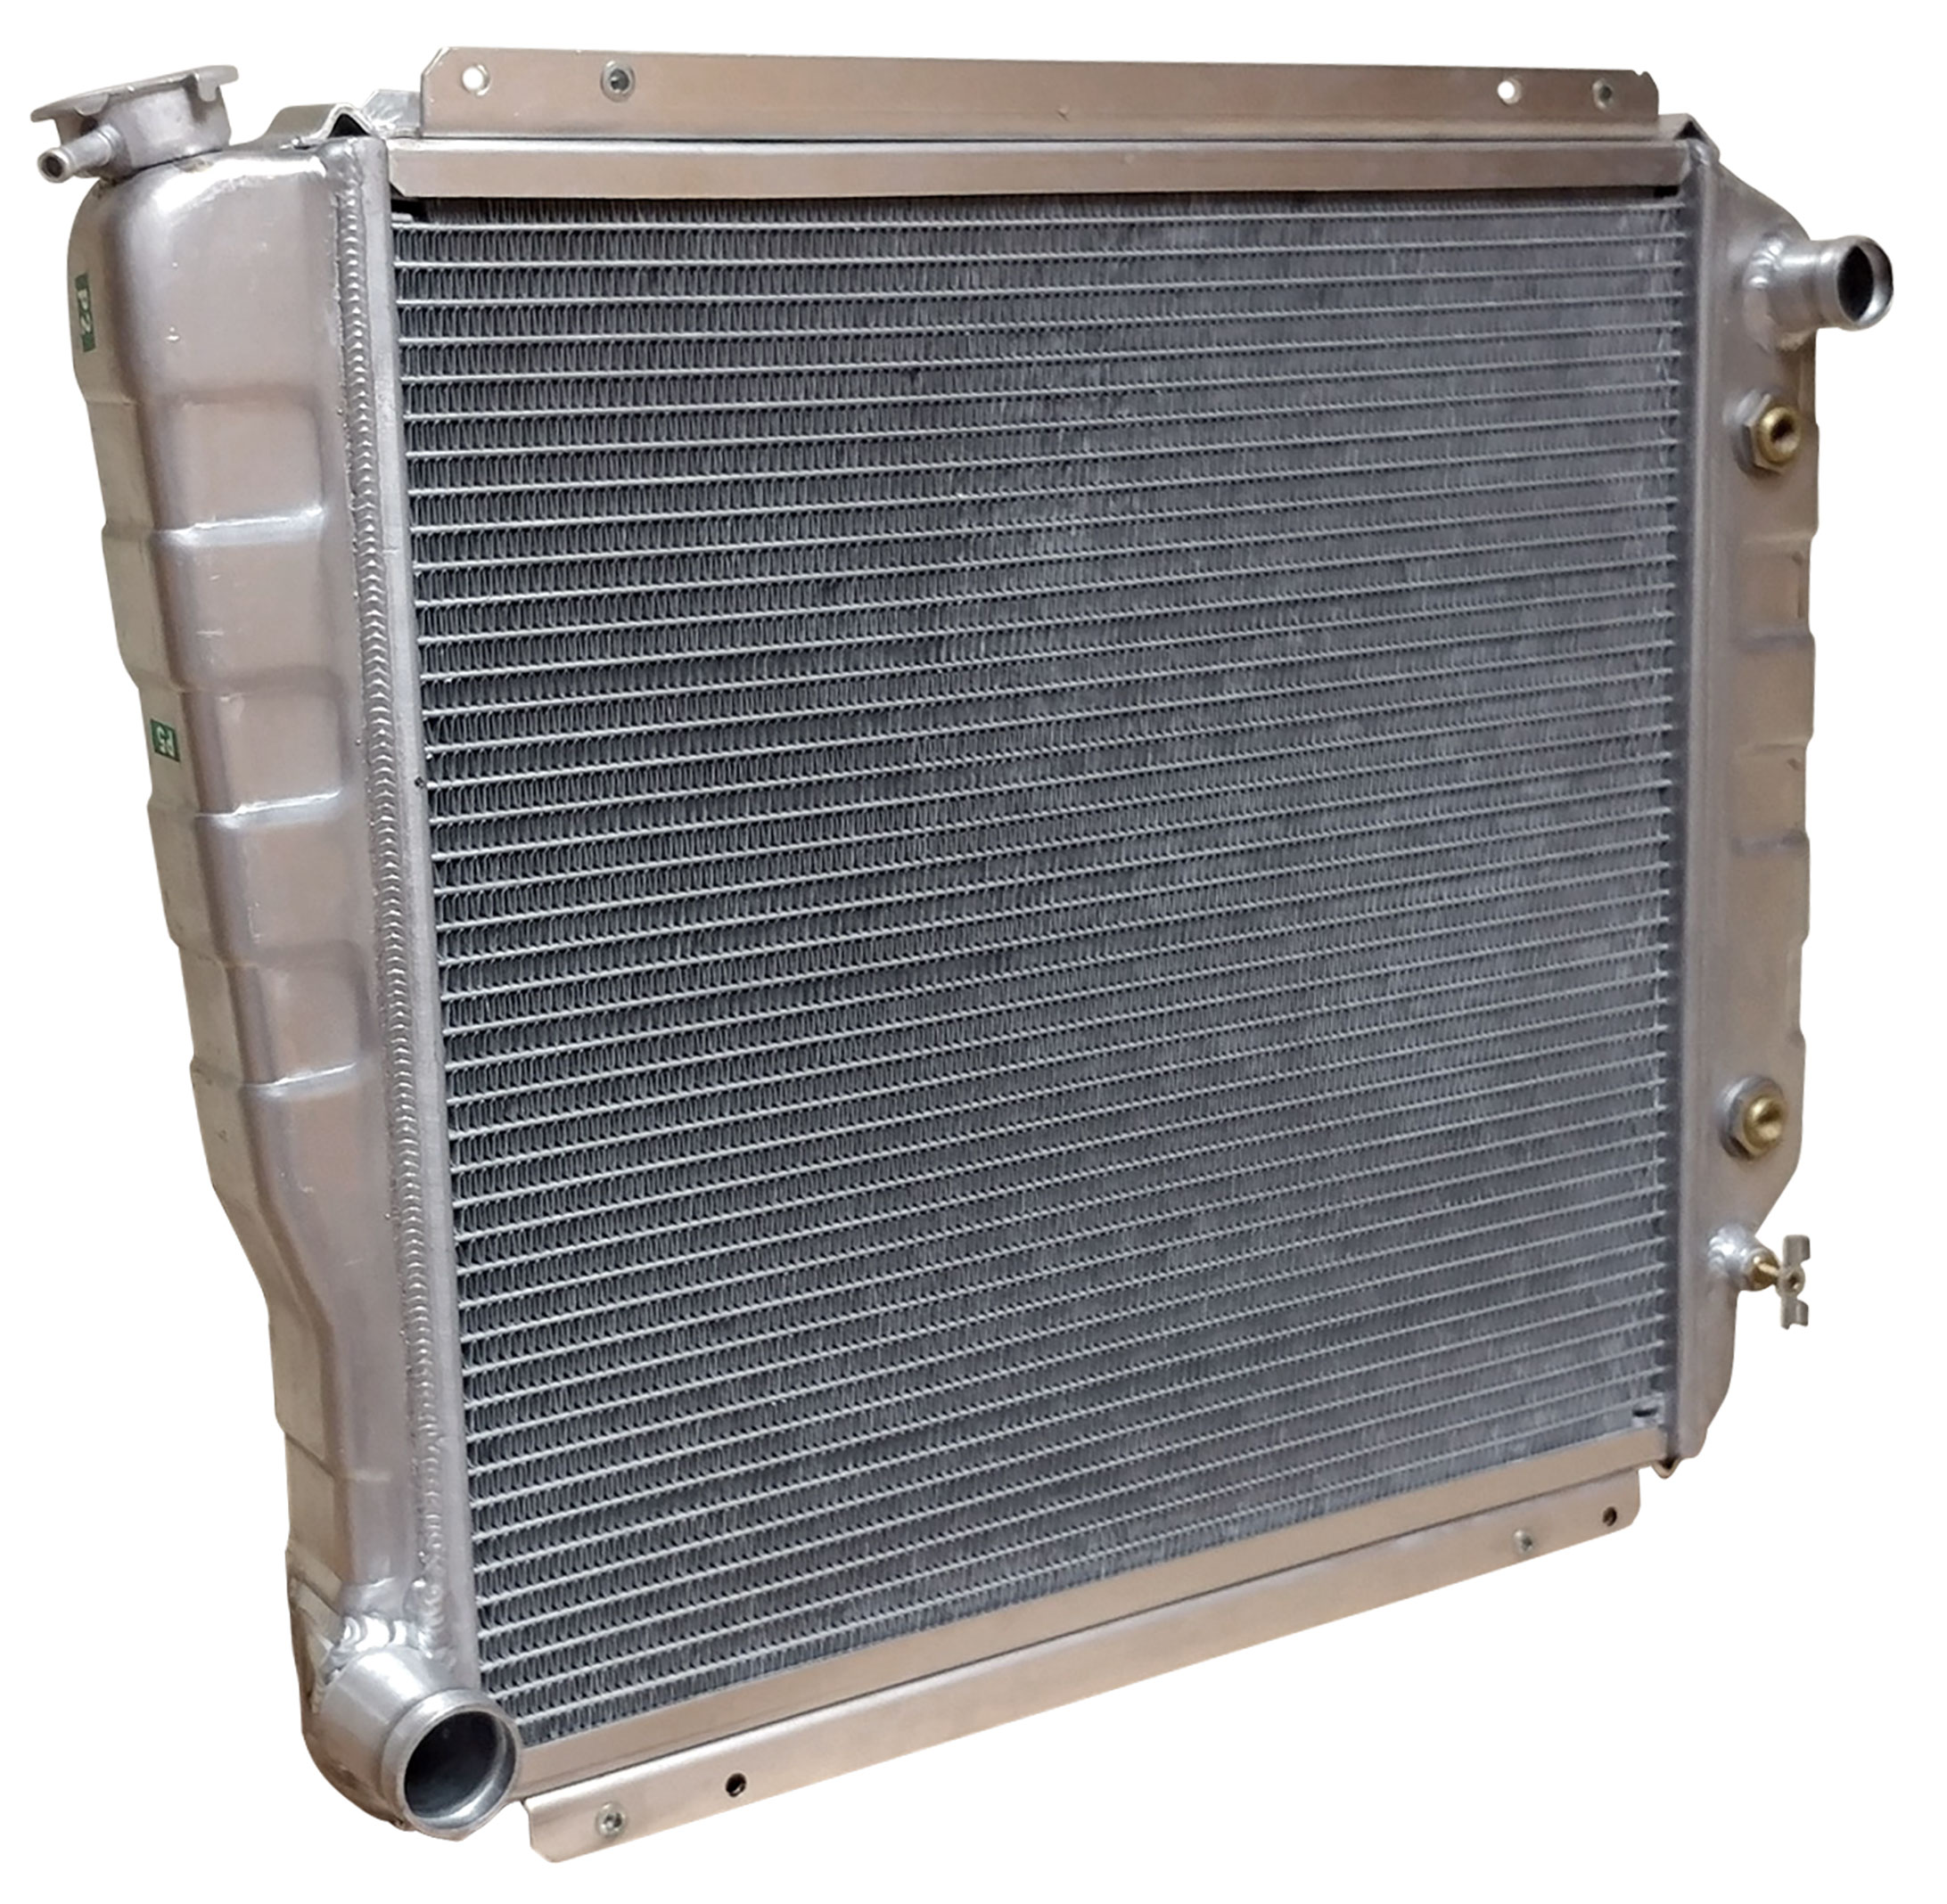 3-Core Aluminum Radiator, Reverse Outlets for Newer EFI Motors